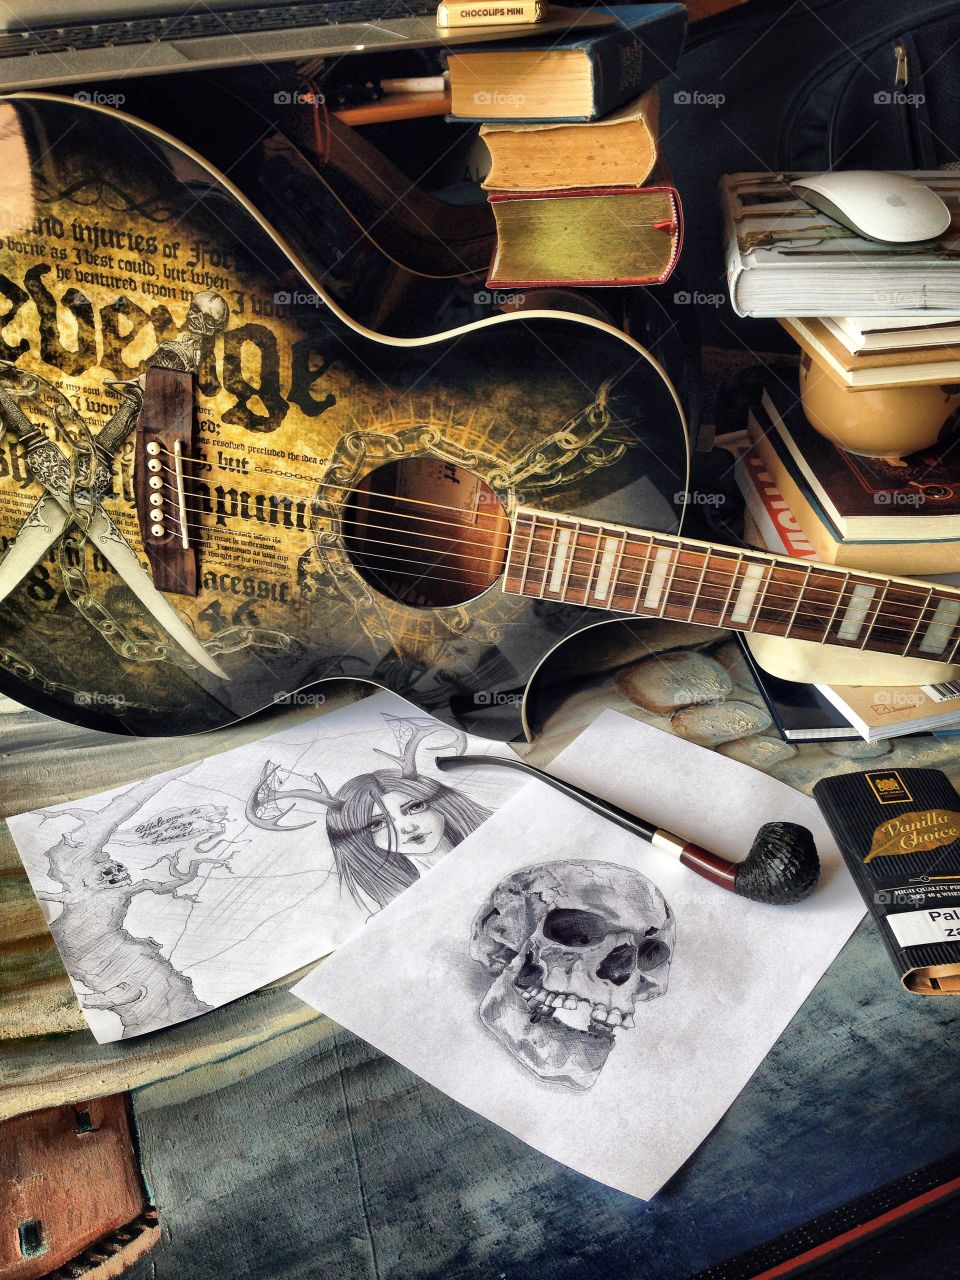 Unexpected way of using guitars! . When working on the desk like decent humans is not enough to attract solid inspiration...